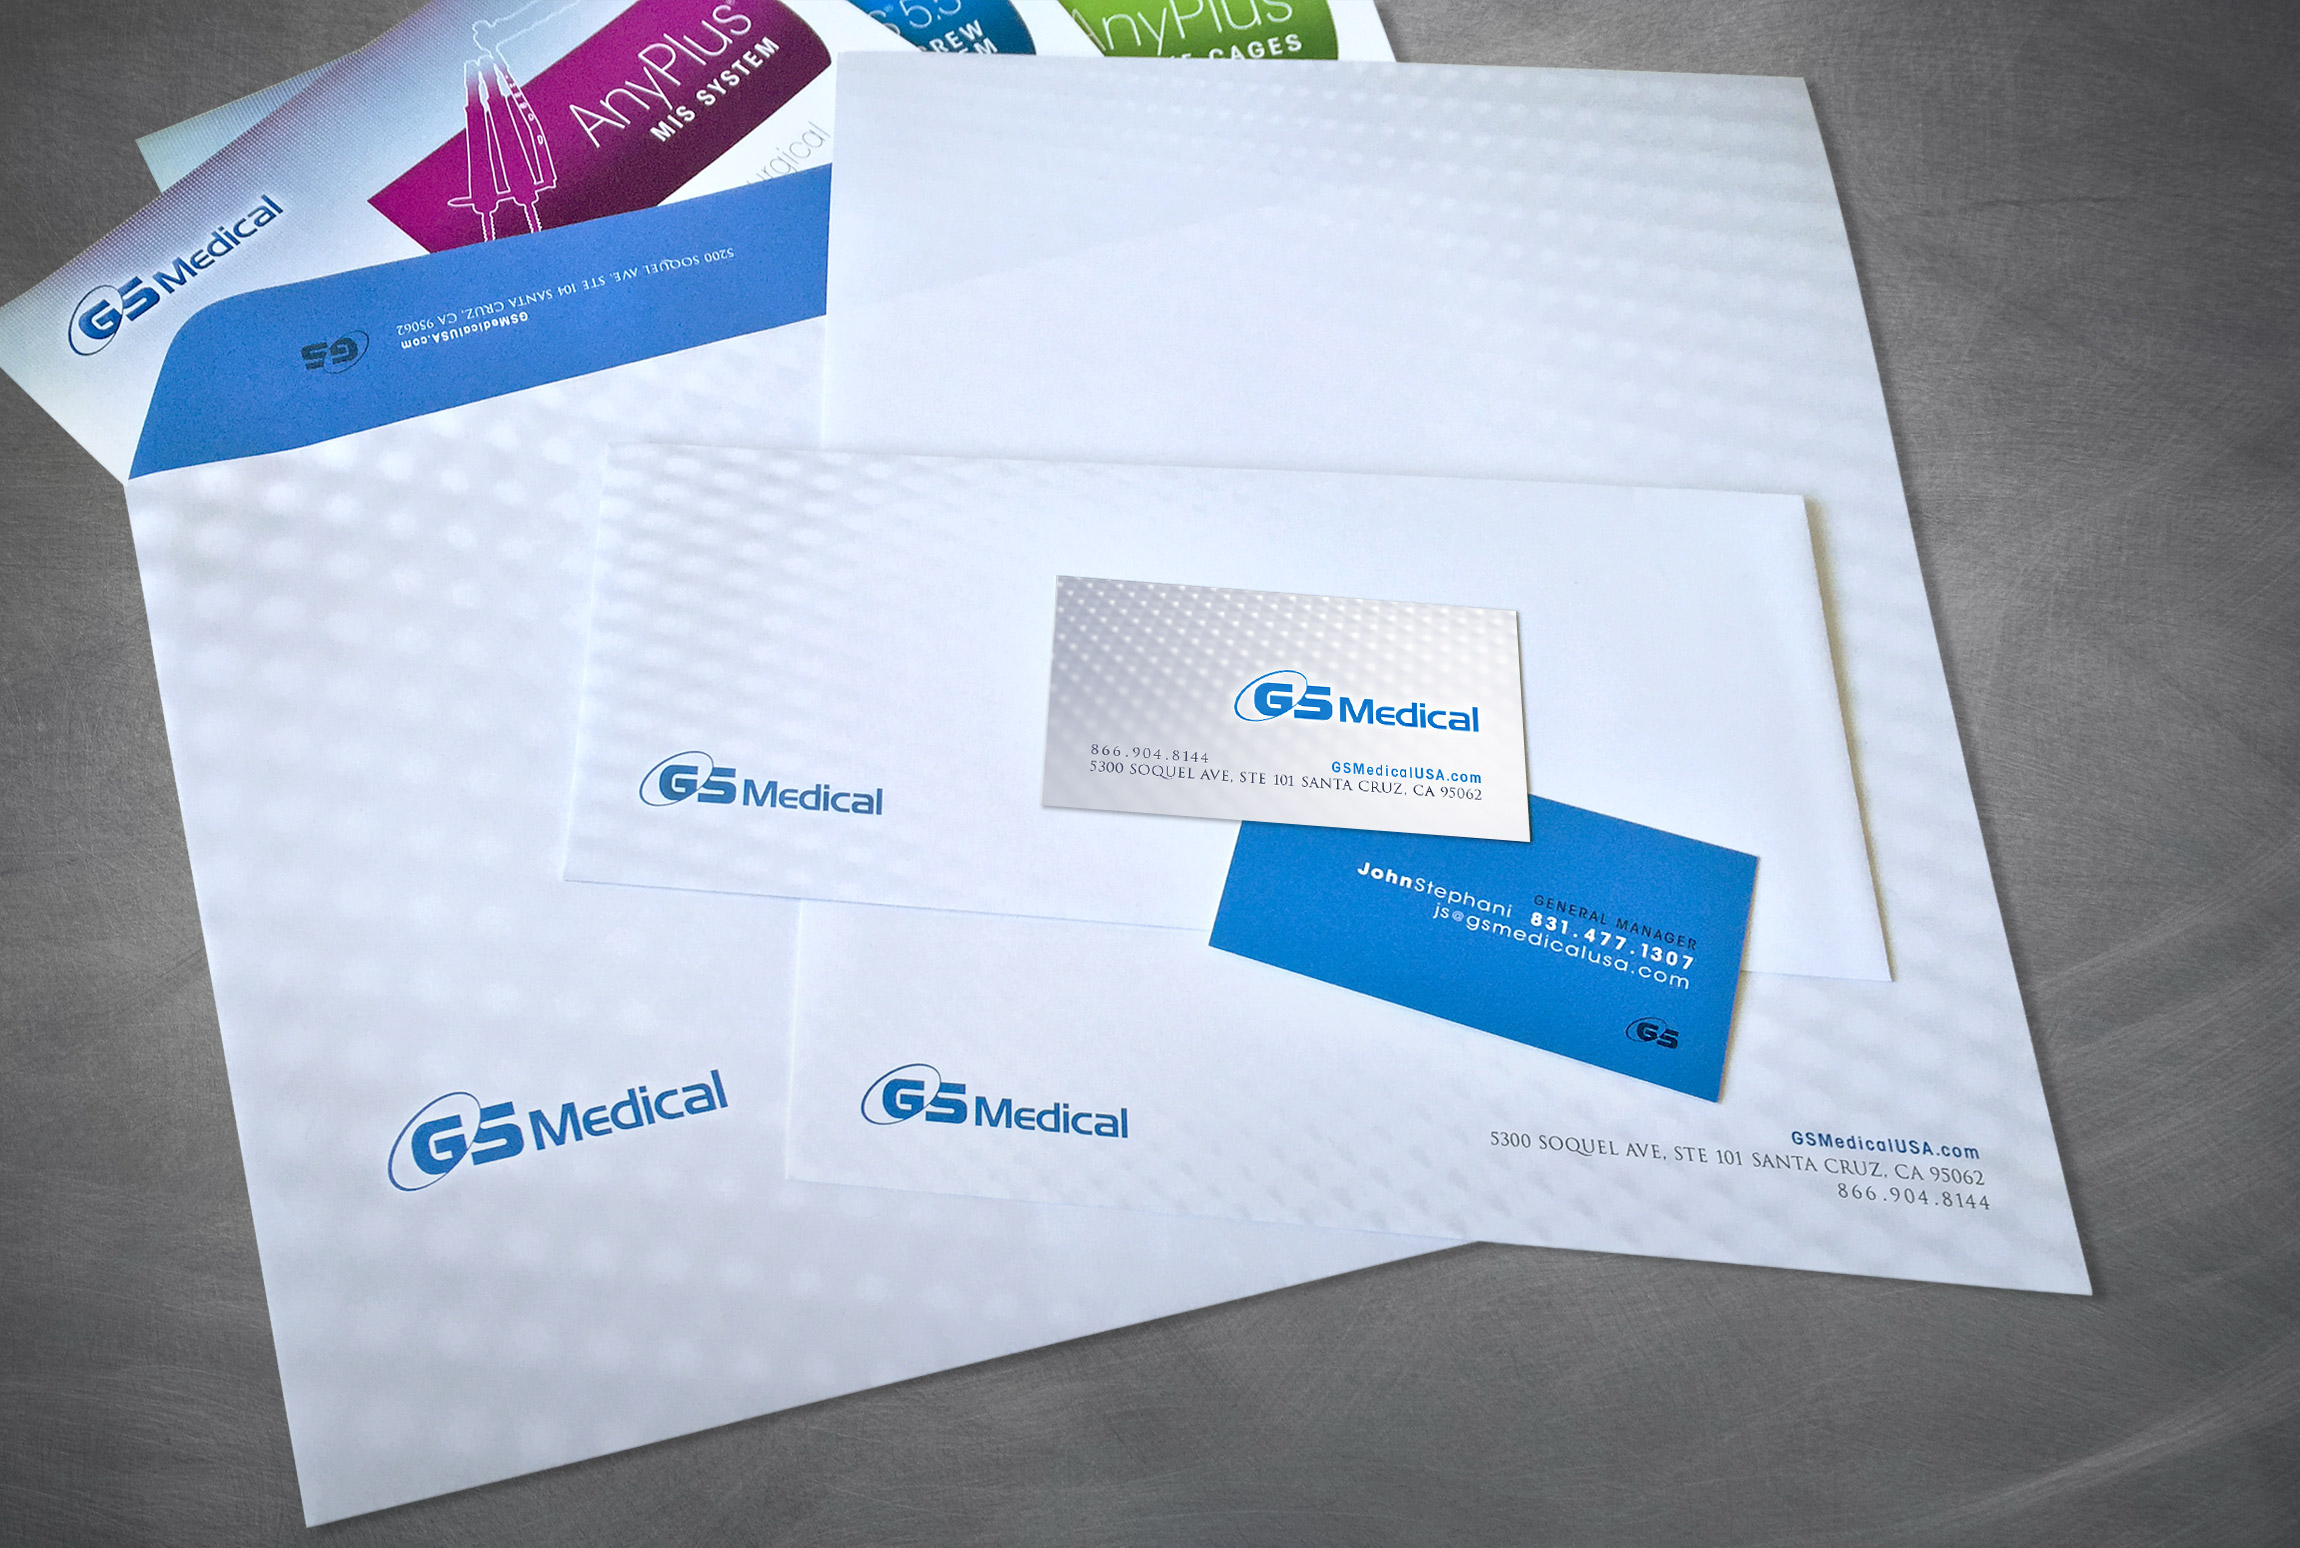 GS Medical USA Stationery Branding Business Card Letterhead Envelope - Graphic Regime